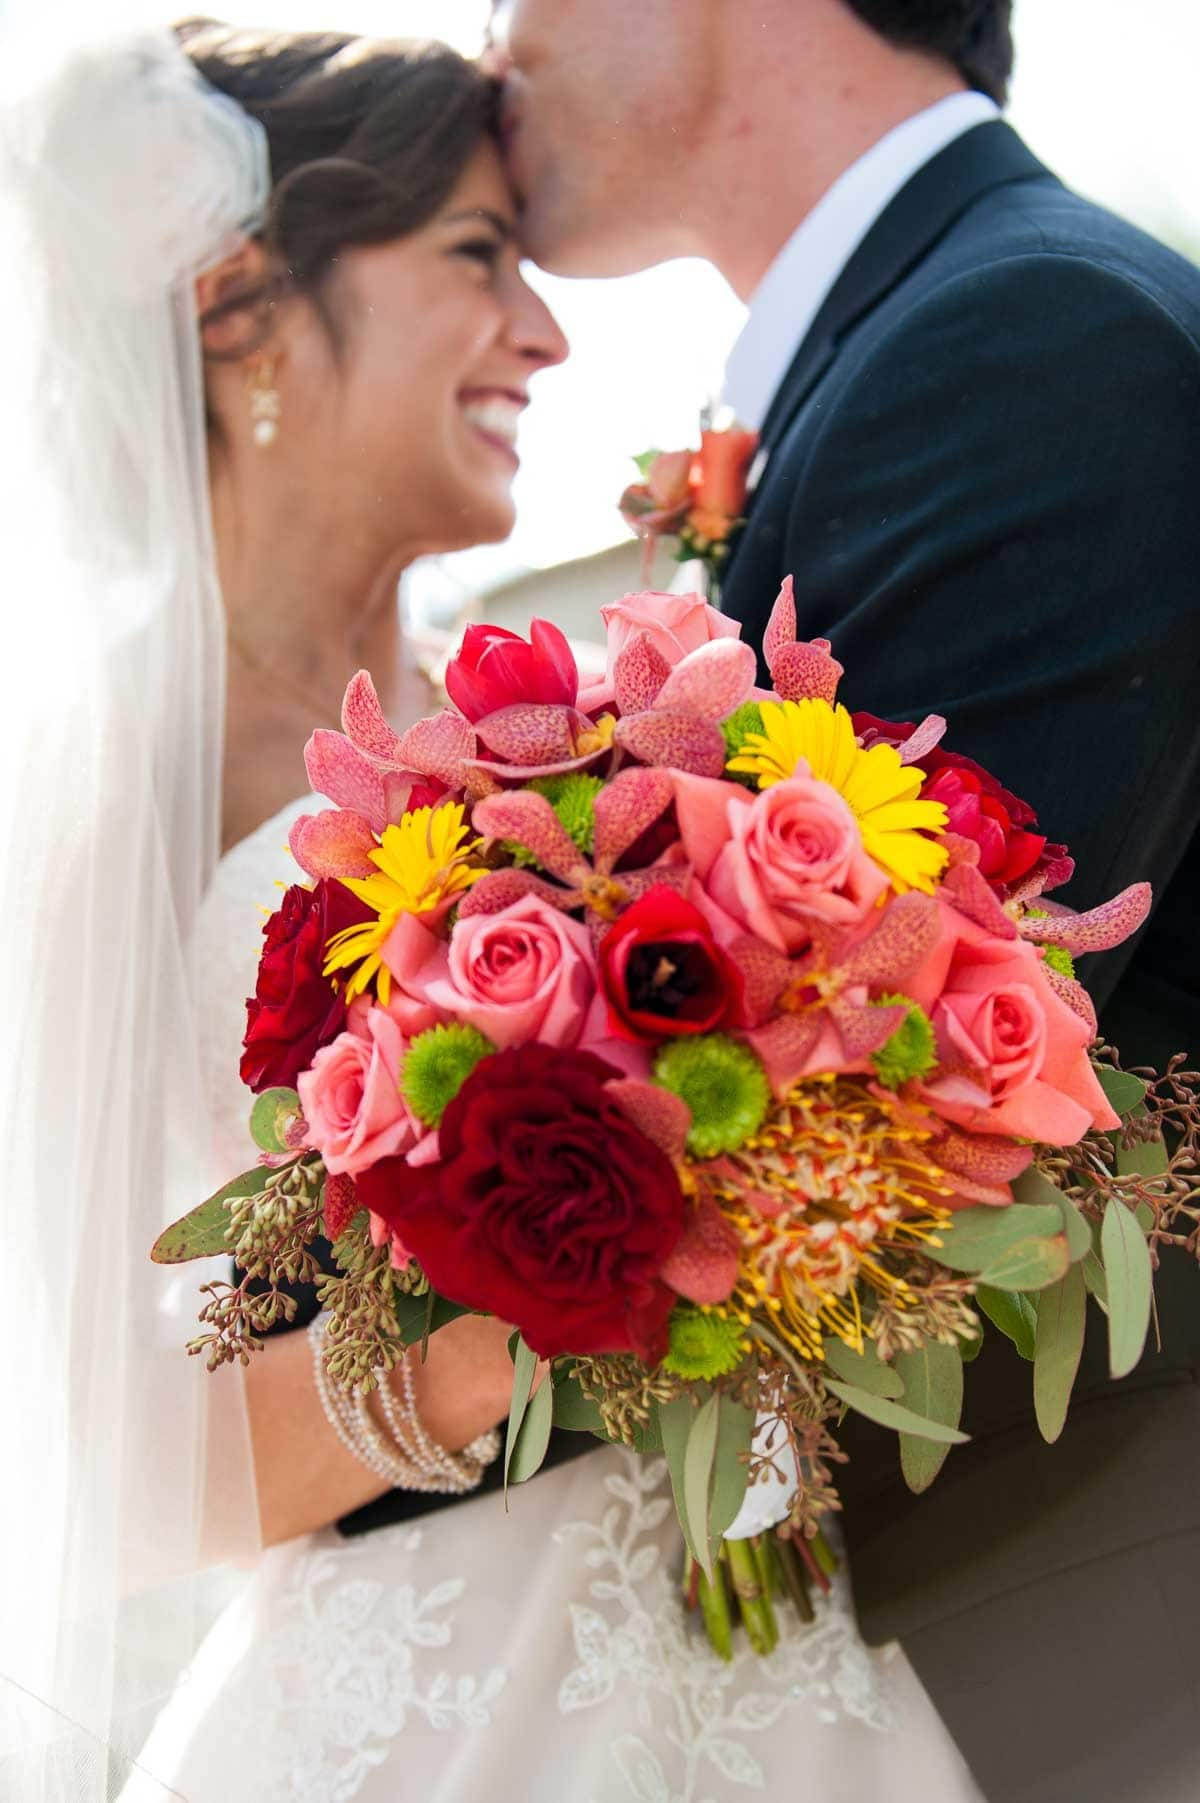 Colorful wedding bouquet for a spring wedding